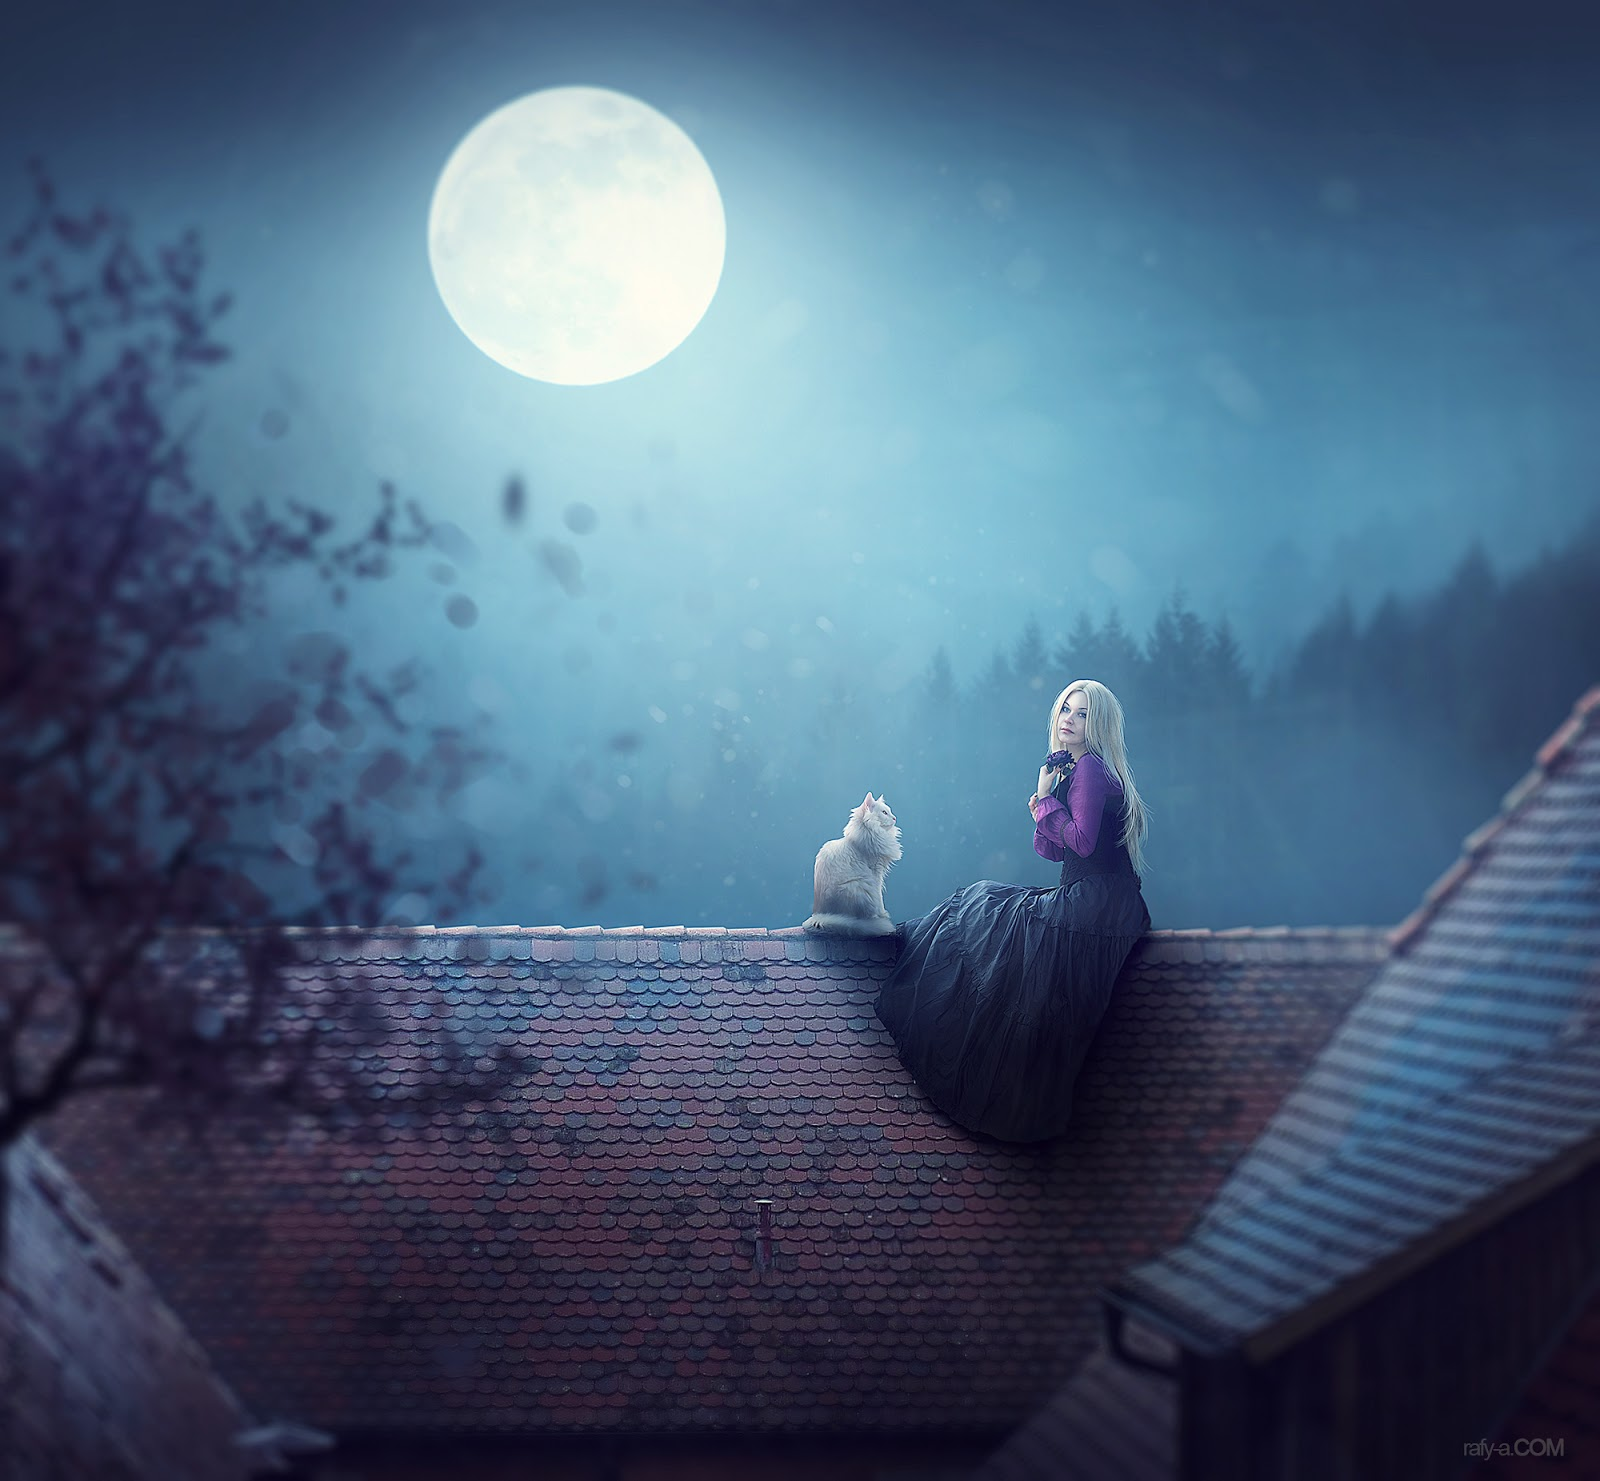 Learn How To Make Photo Manipulation Night Moonlight Scene Effects In  Photoshop Cc 2017